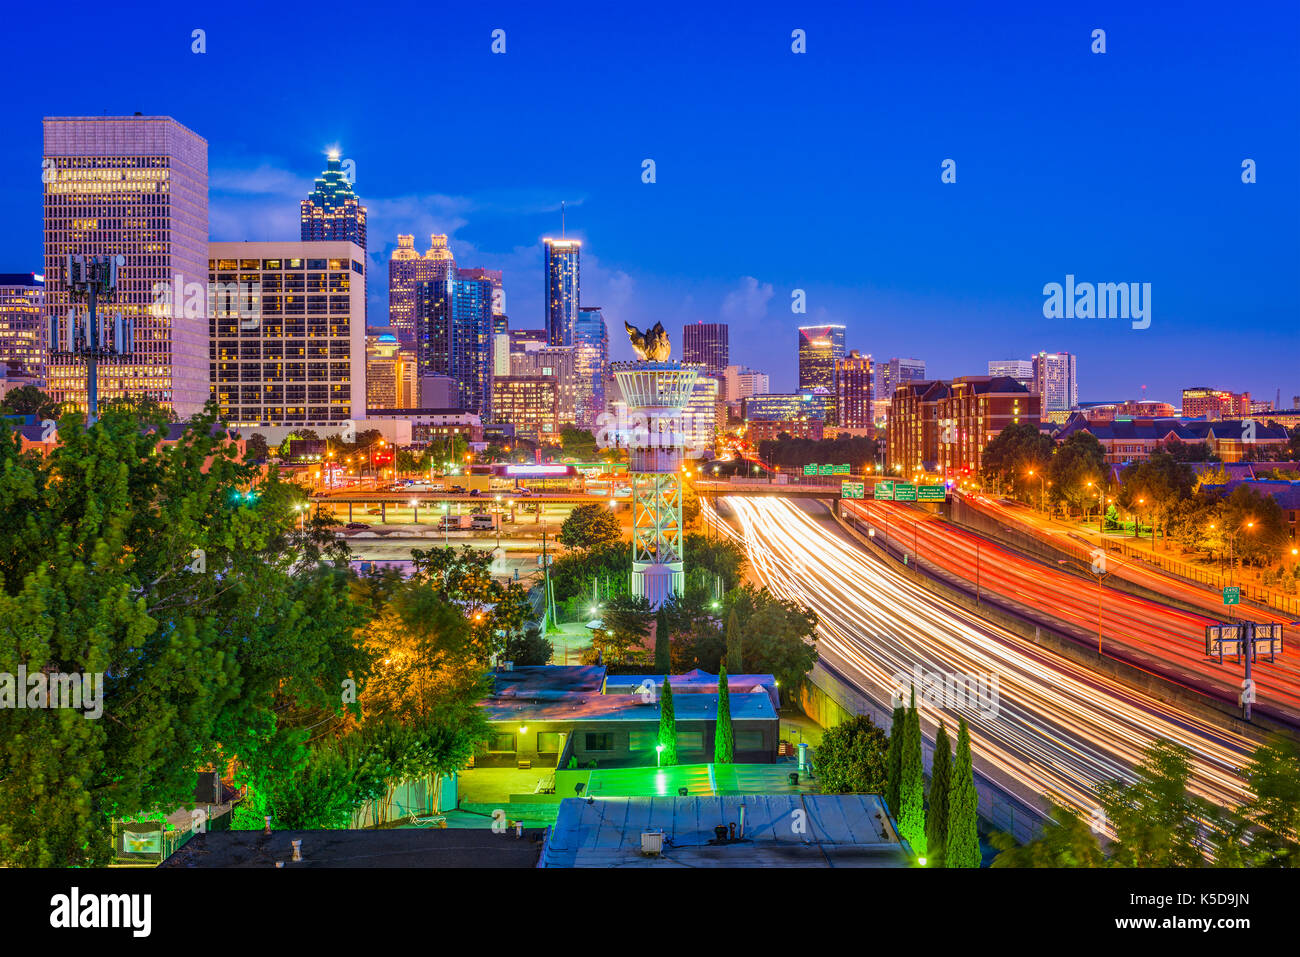 Atlanta, Georgia, USA downtown cityscape at night. - Stock Image